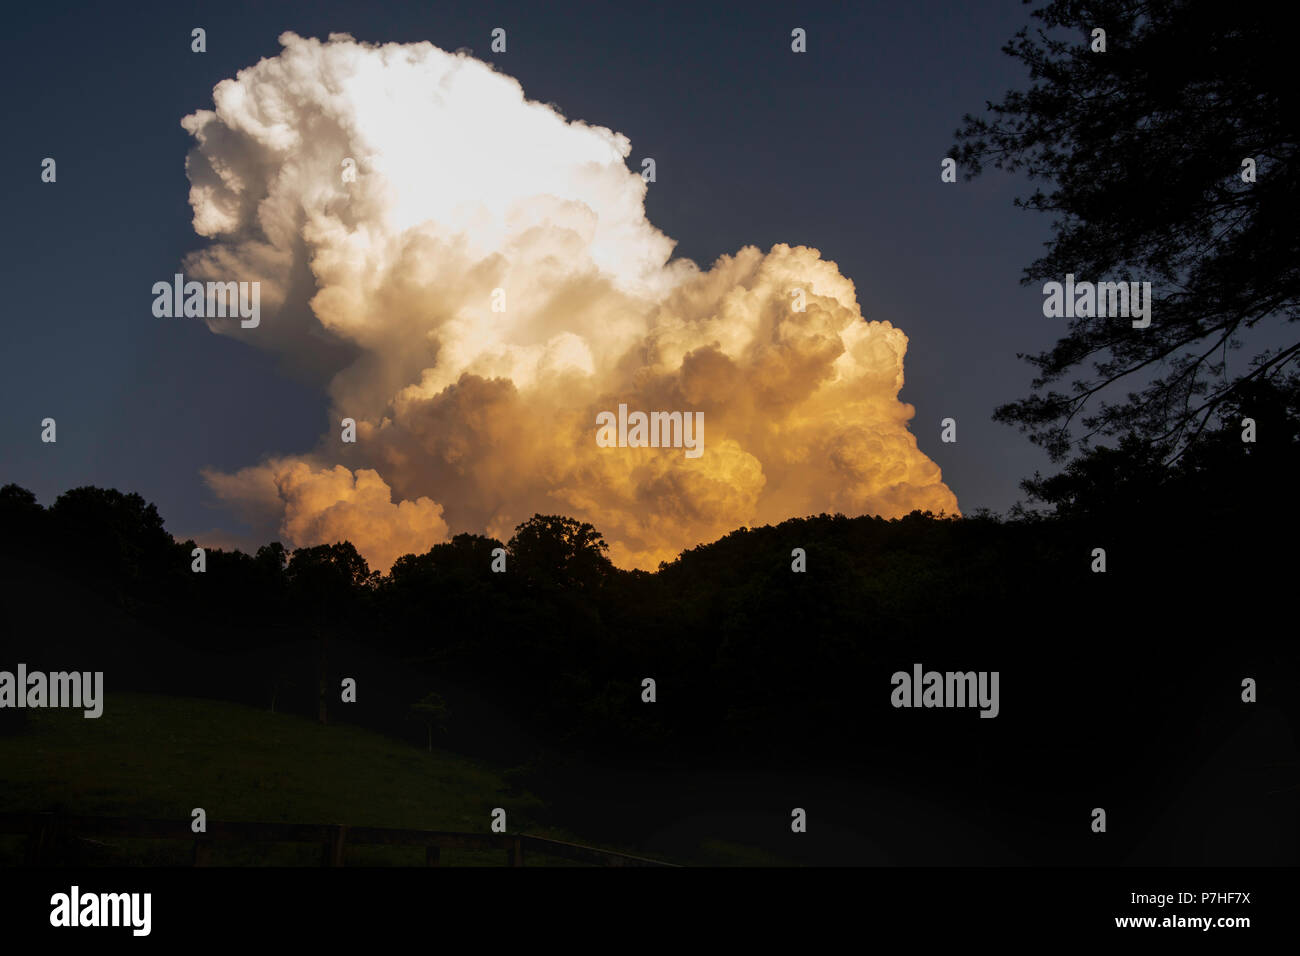 Summer Thunderhead over Trees - Stock Image